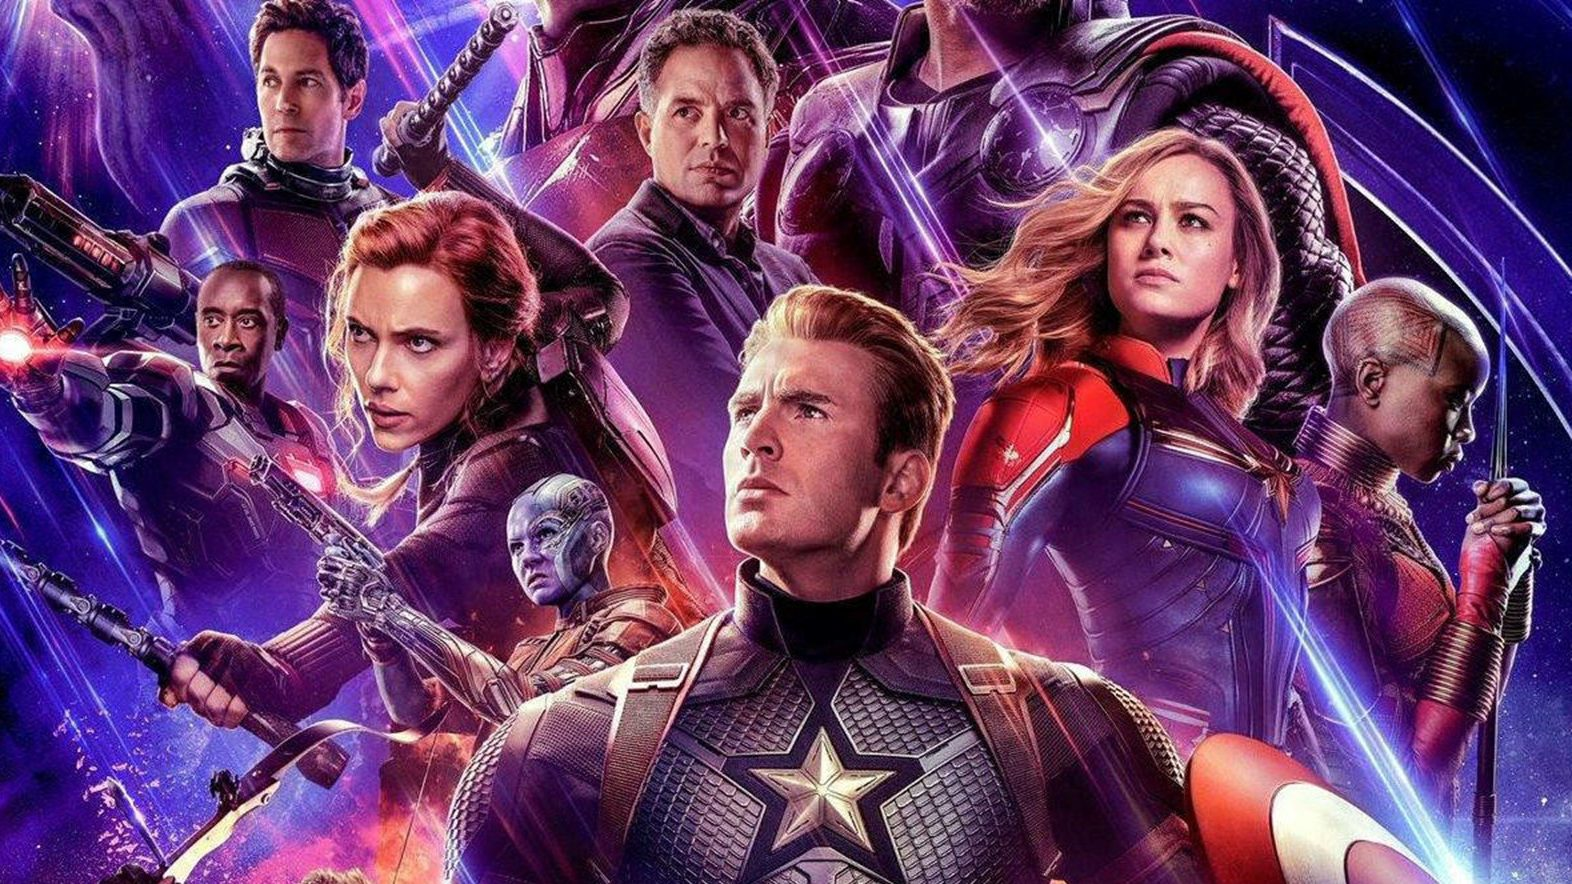 Avengers Endgame Marvel Movies Ranked With Plot Points And Rotten